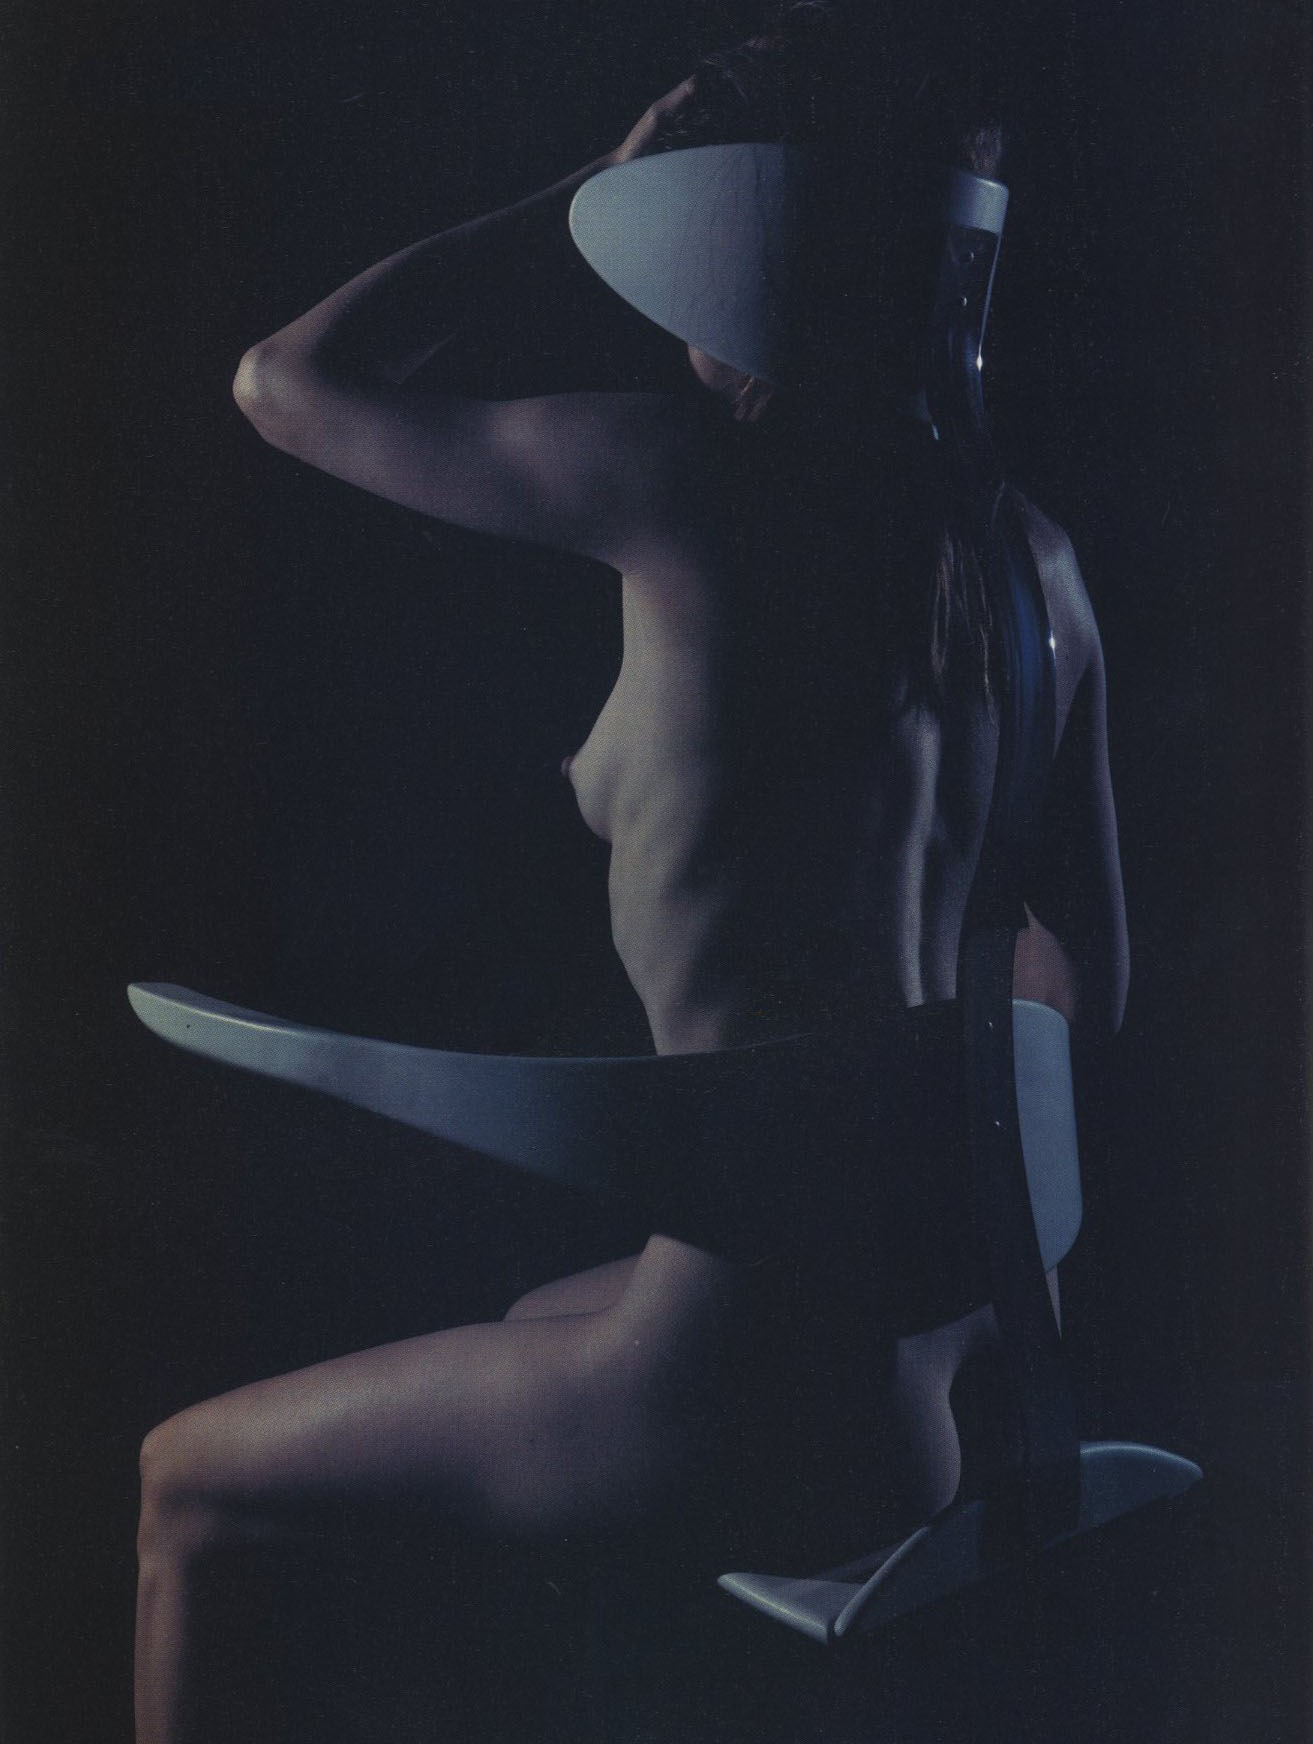 environmental chair hussein chalayan photography mario sorrenti styling jane how id the kinetic issue no 184 march 1999